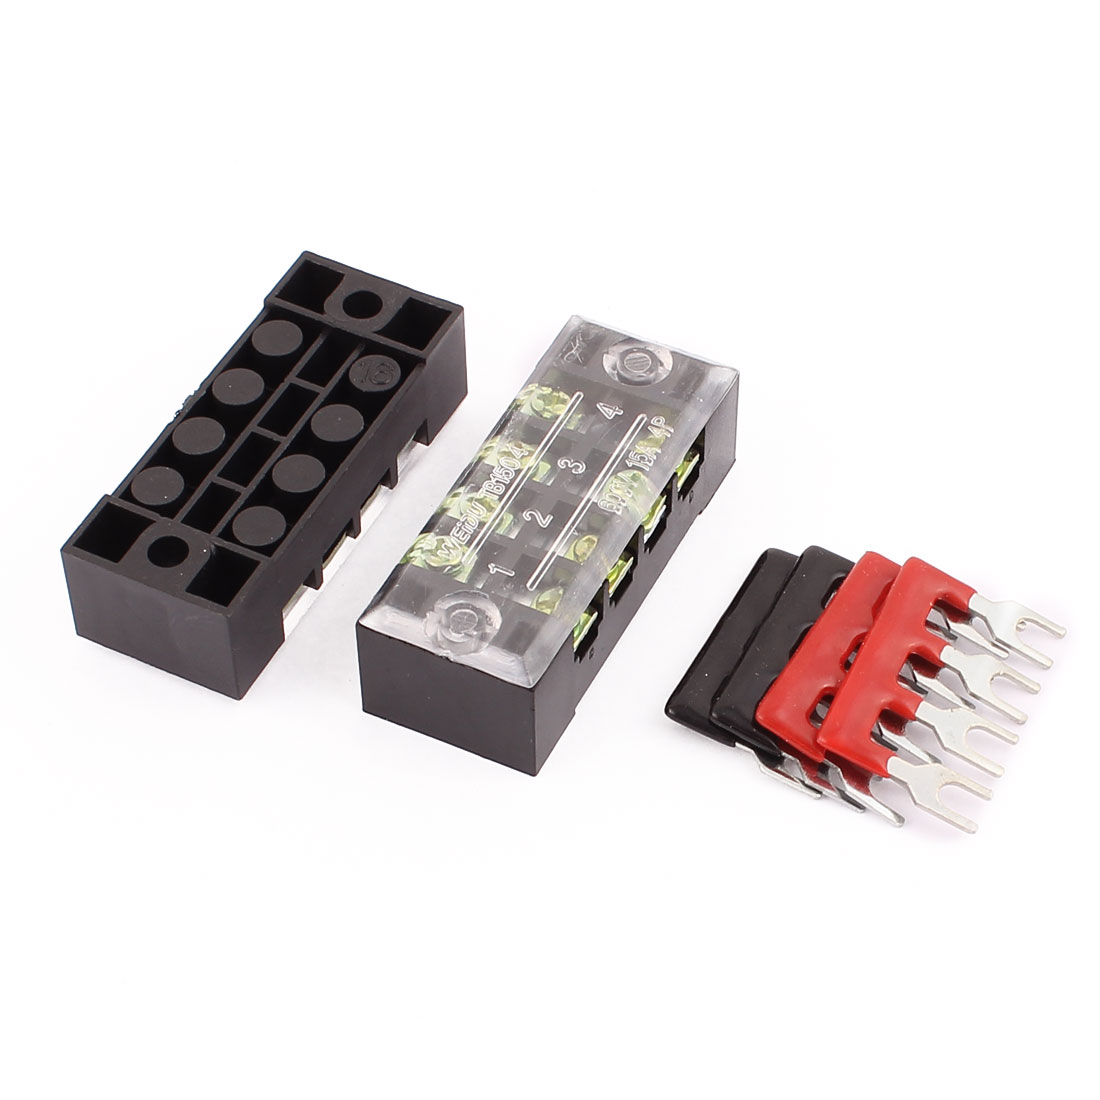 2 Pcs 600V 15A 4P Dual Row Barrier Terminal Block Wire Connector Bar + 4 x Terminal Stripes